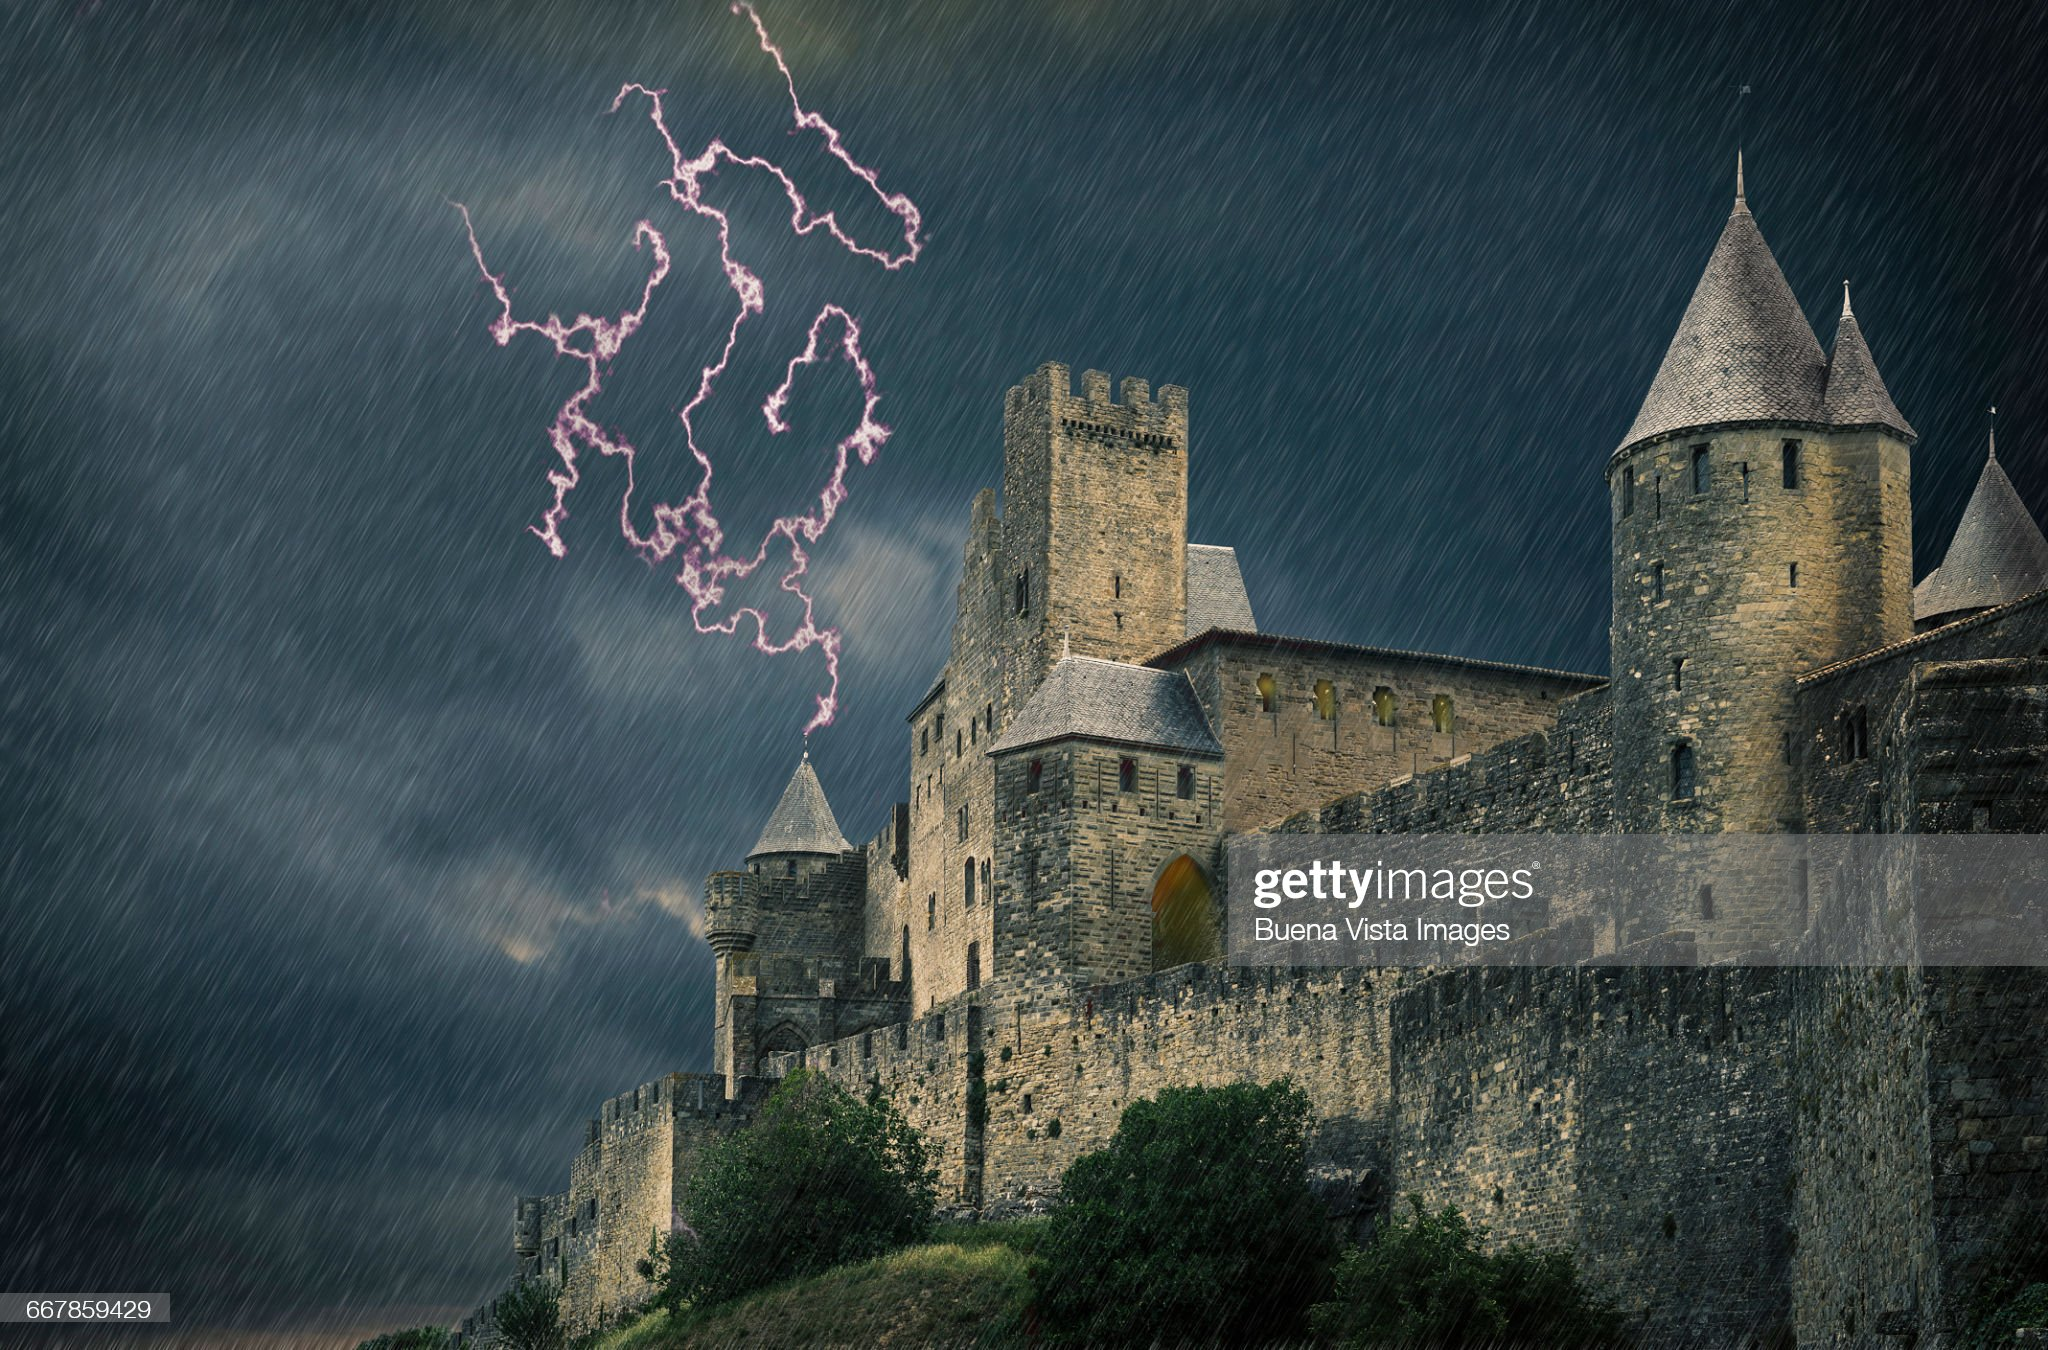 https://media.gettyimages.com/photos/lightning-over-castle-in-a-storm-picture-id667859429?s=2048x2048